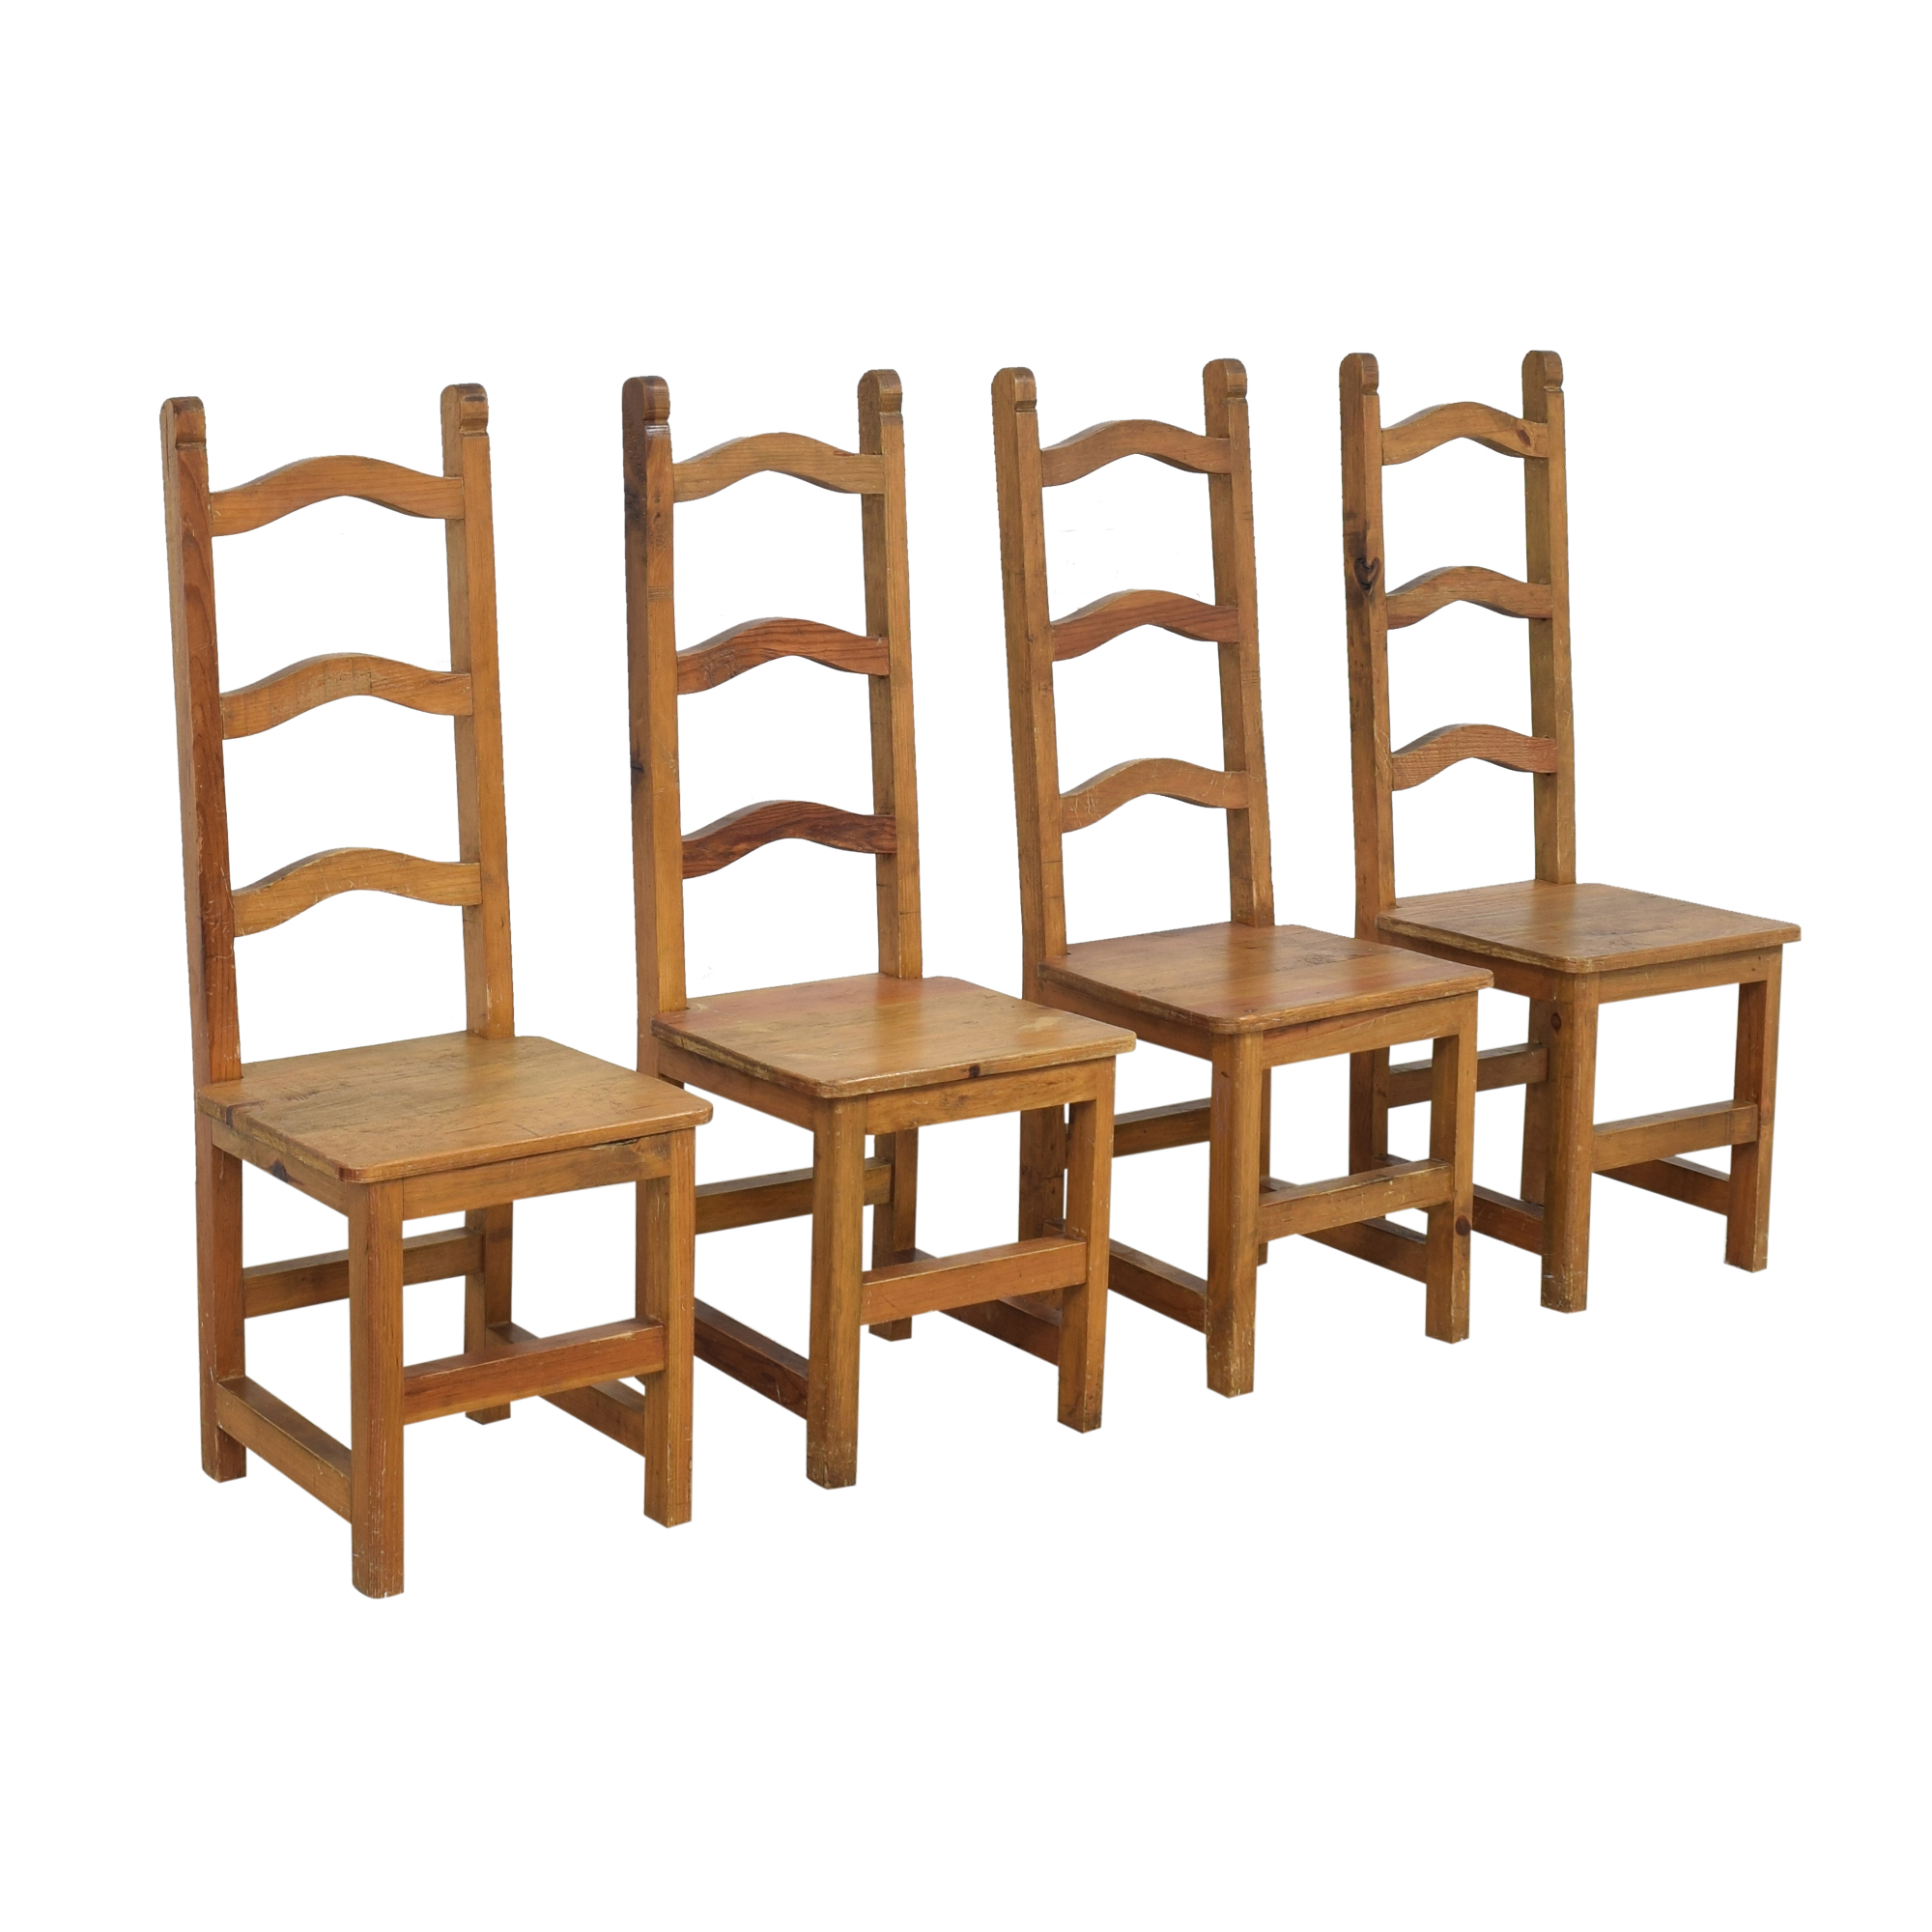 shop ABC Carpet & Home Ladderback Dining Chairs ABC Carpet & Home Chairs